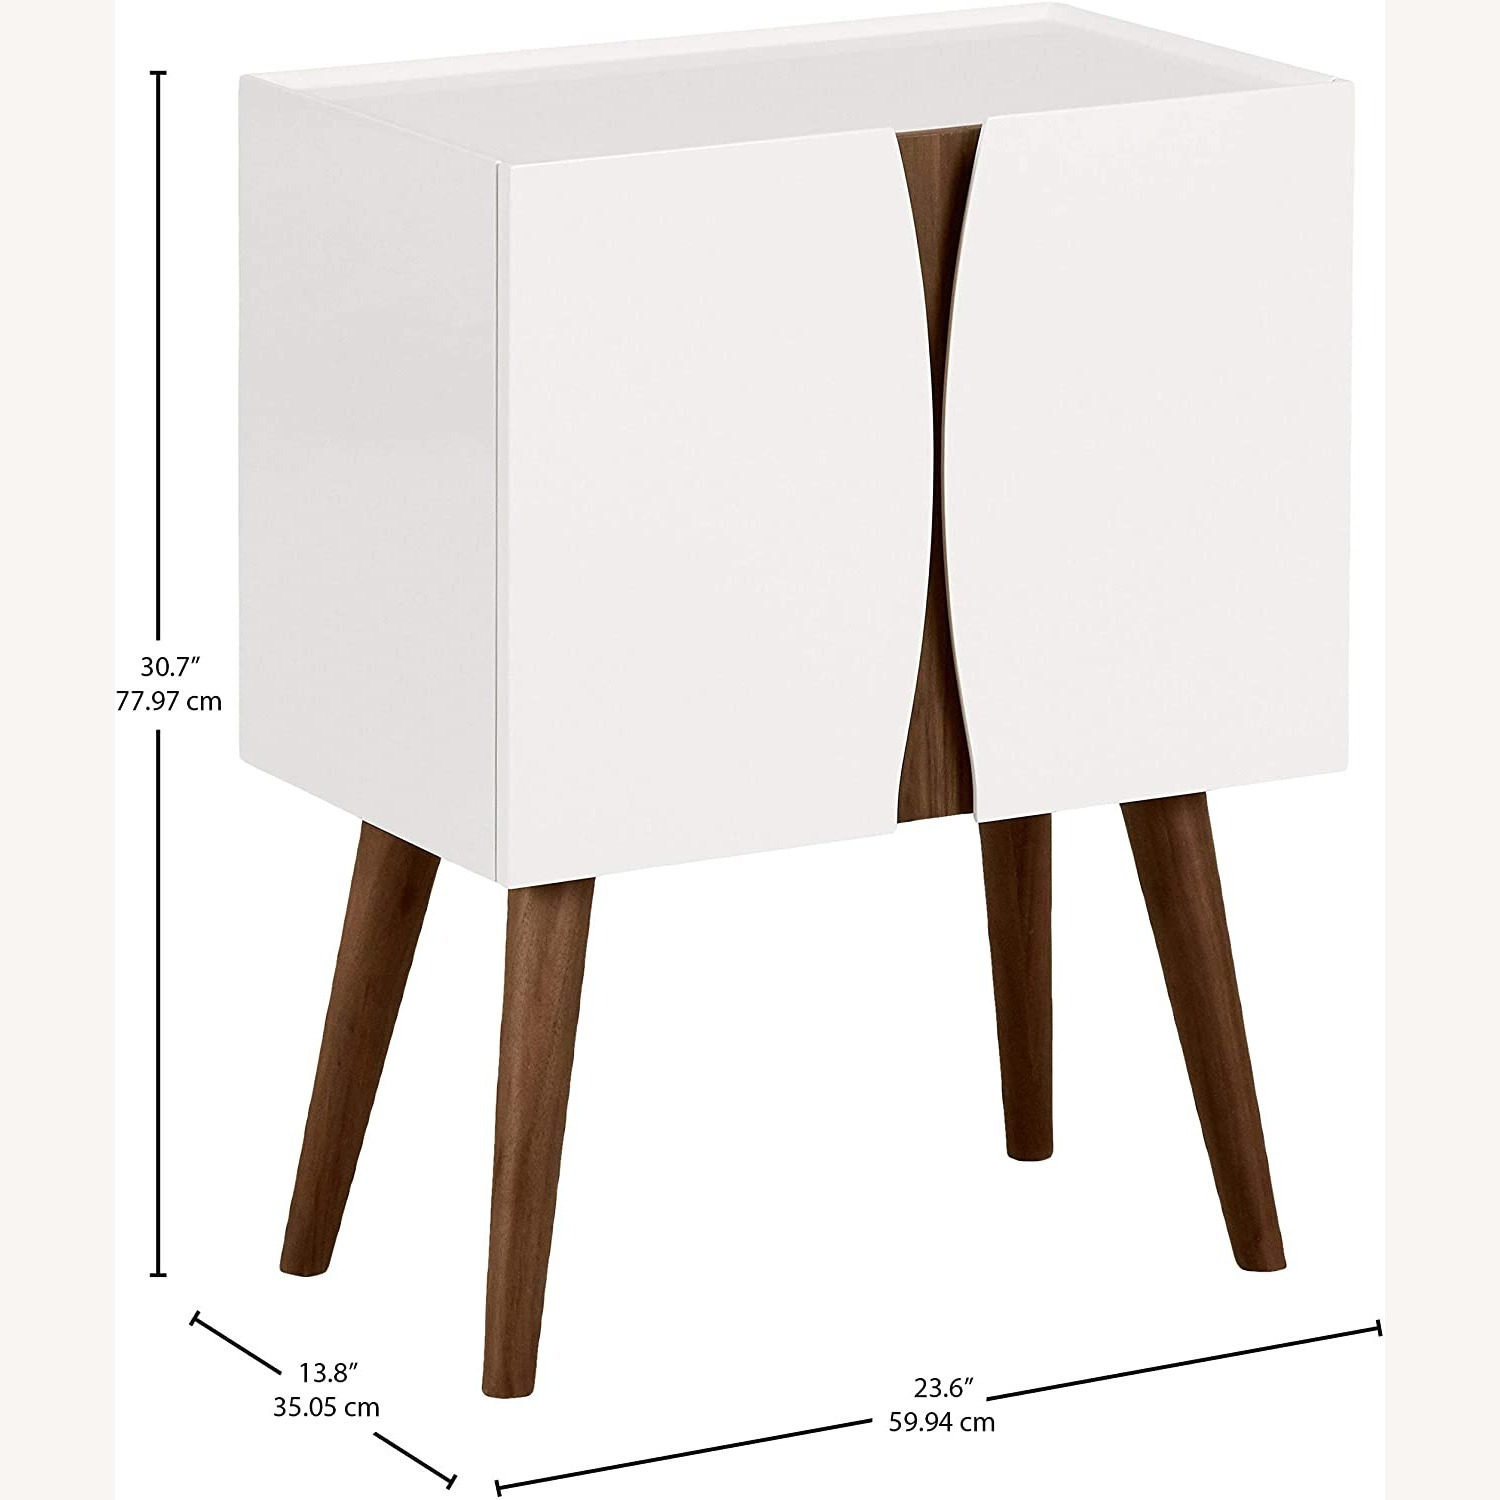 Midcentury Modern White Lacquer and Wood Cabinet - image-5